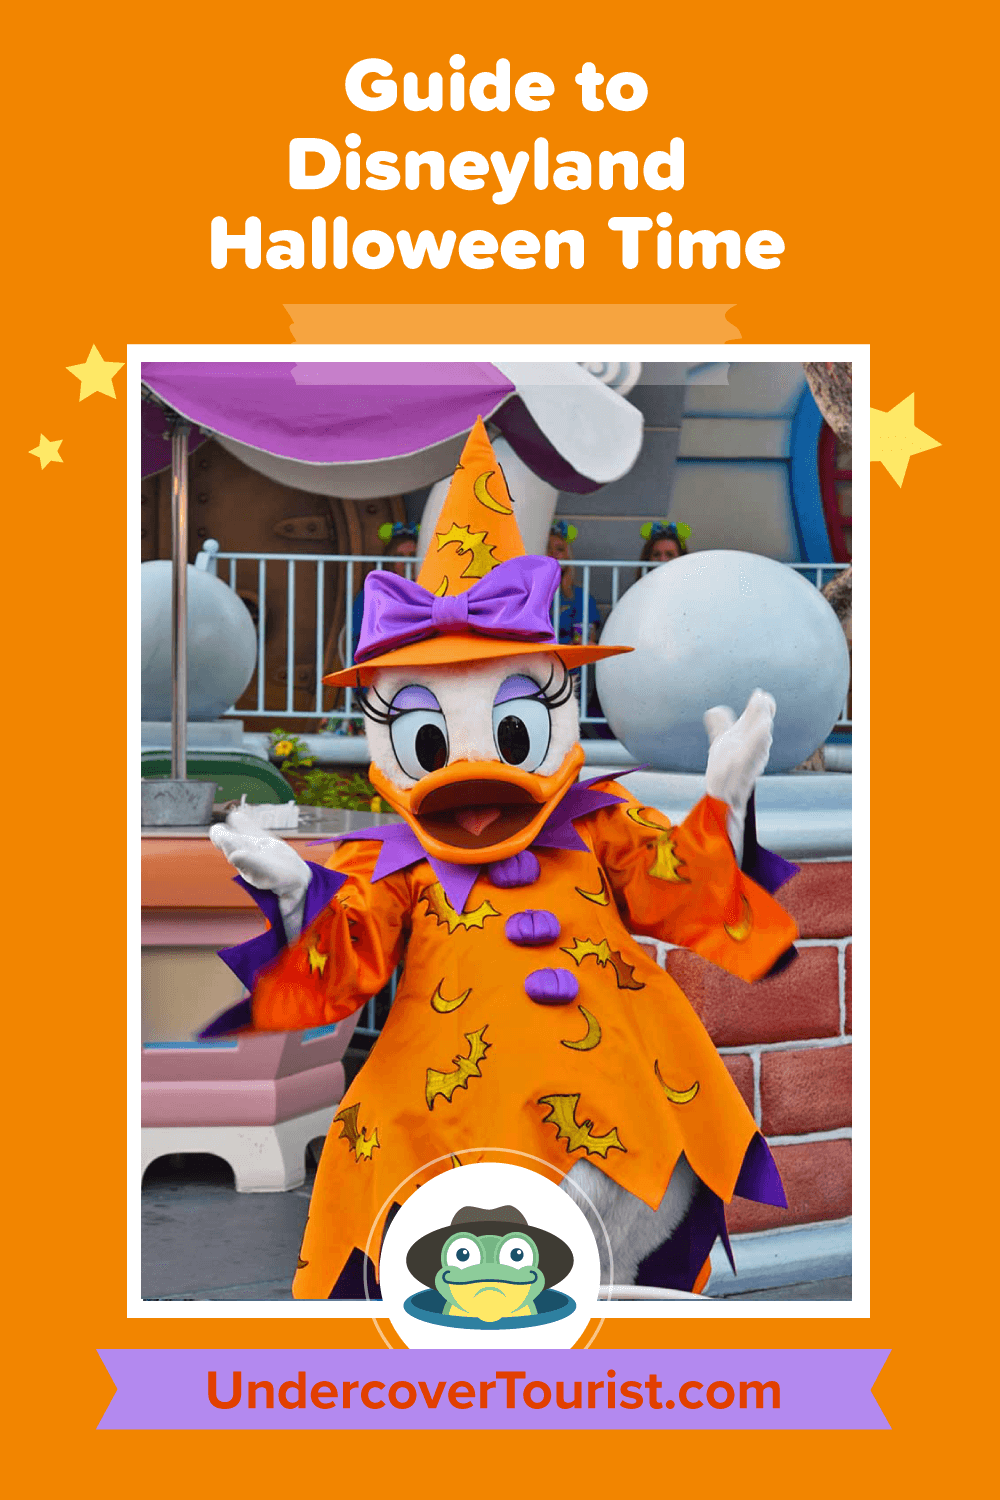 Disneyland Halloween 2019 Merchandise.Ultimate Guide To Disneyland Halloween Time 2019